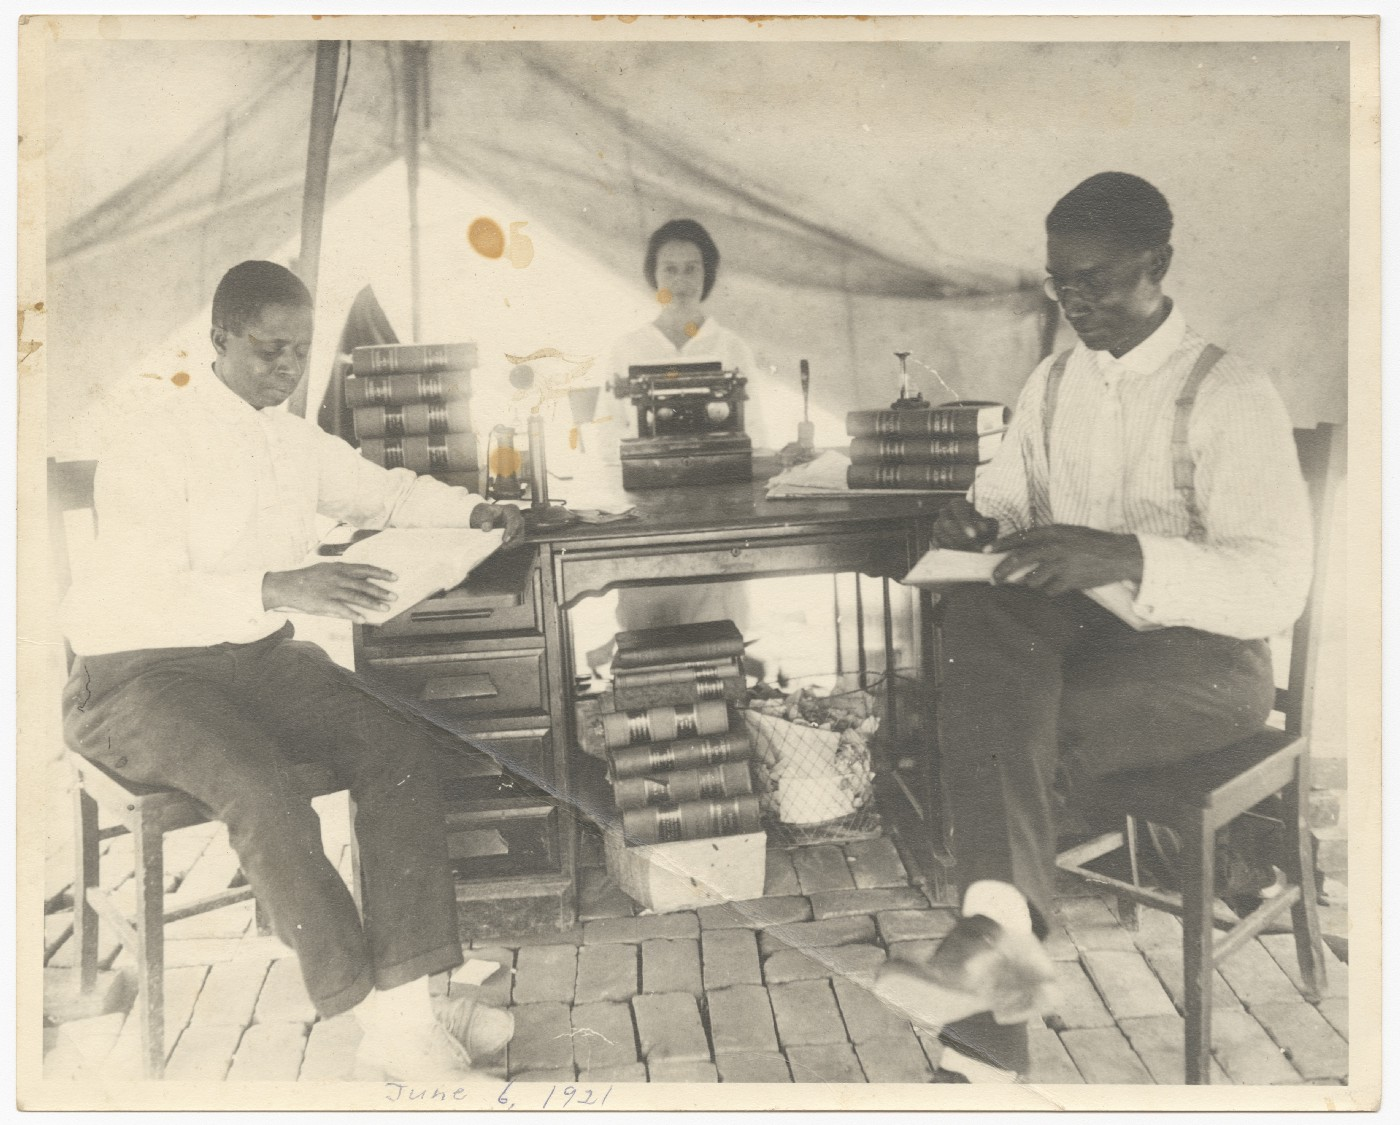 Attorney B.C. Franklin (right) sits with his partner and secretary in a makeshift law office under a tent. Tulsa 1921.